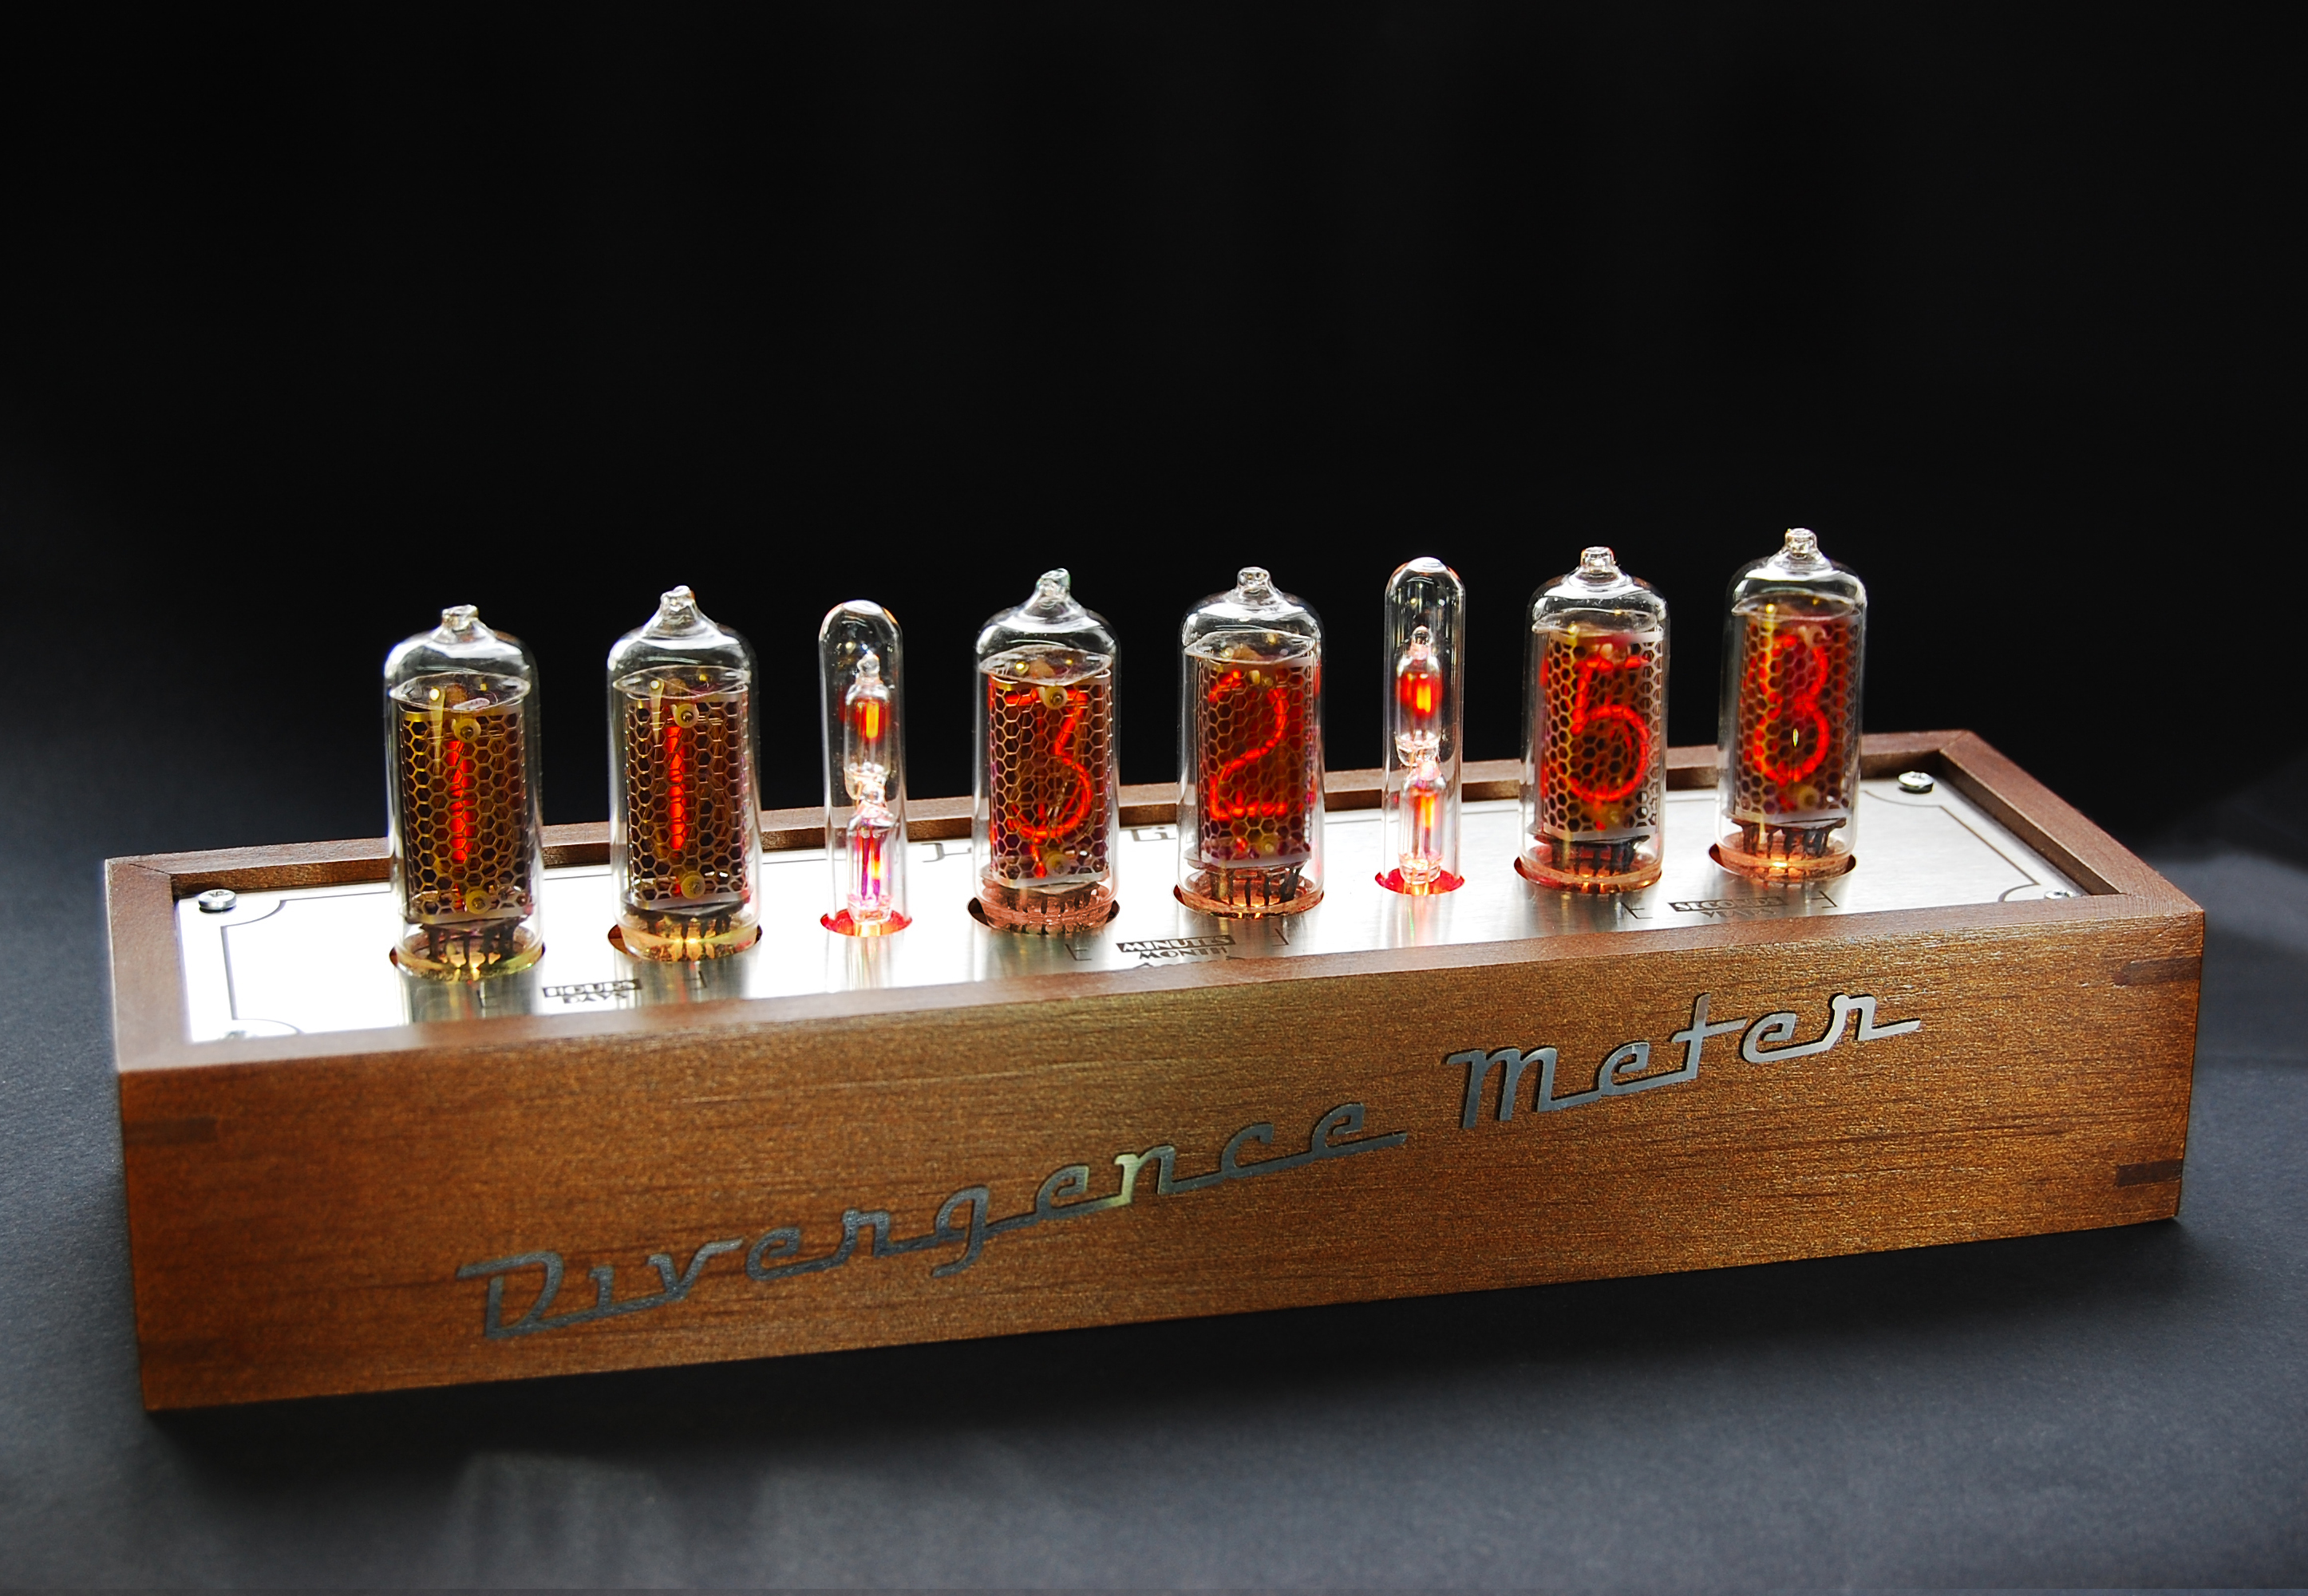 In 14 Fine Grid Vintage Nixie Tubes Clock Usb Divergence Meter Tube Further On Schematic Actual Photos Of Mini By Gra Afch